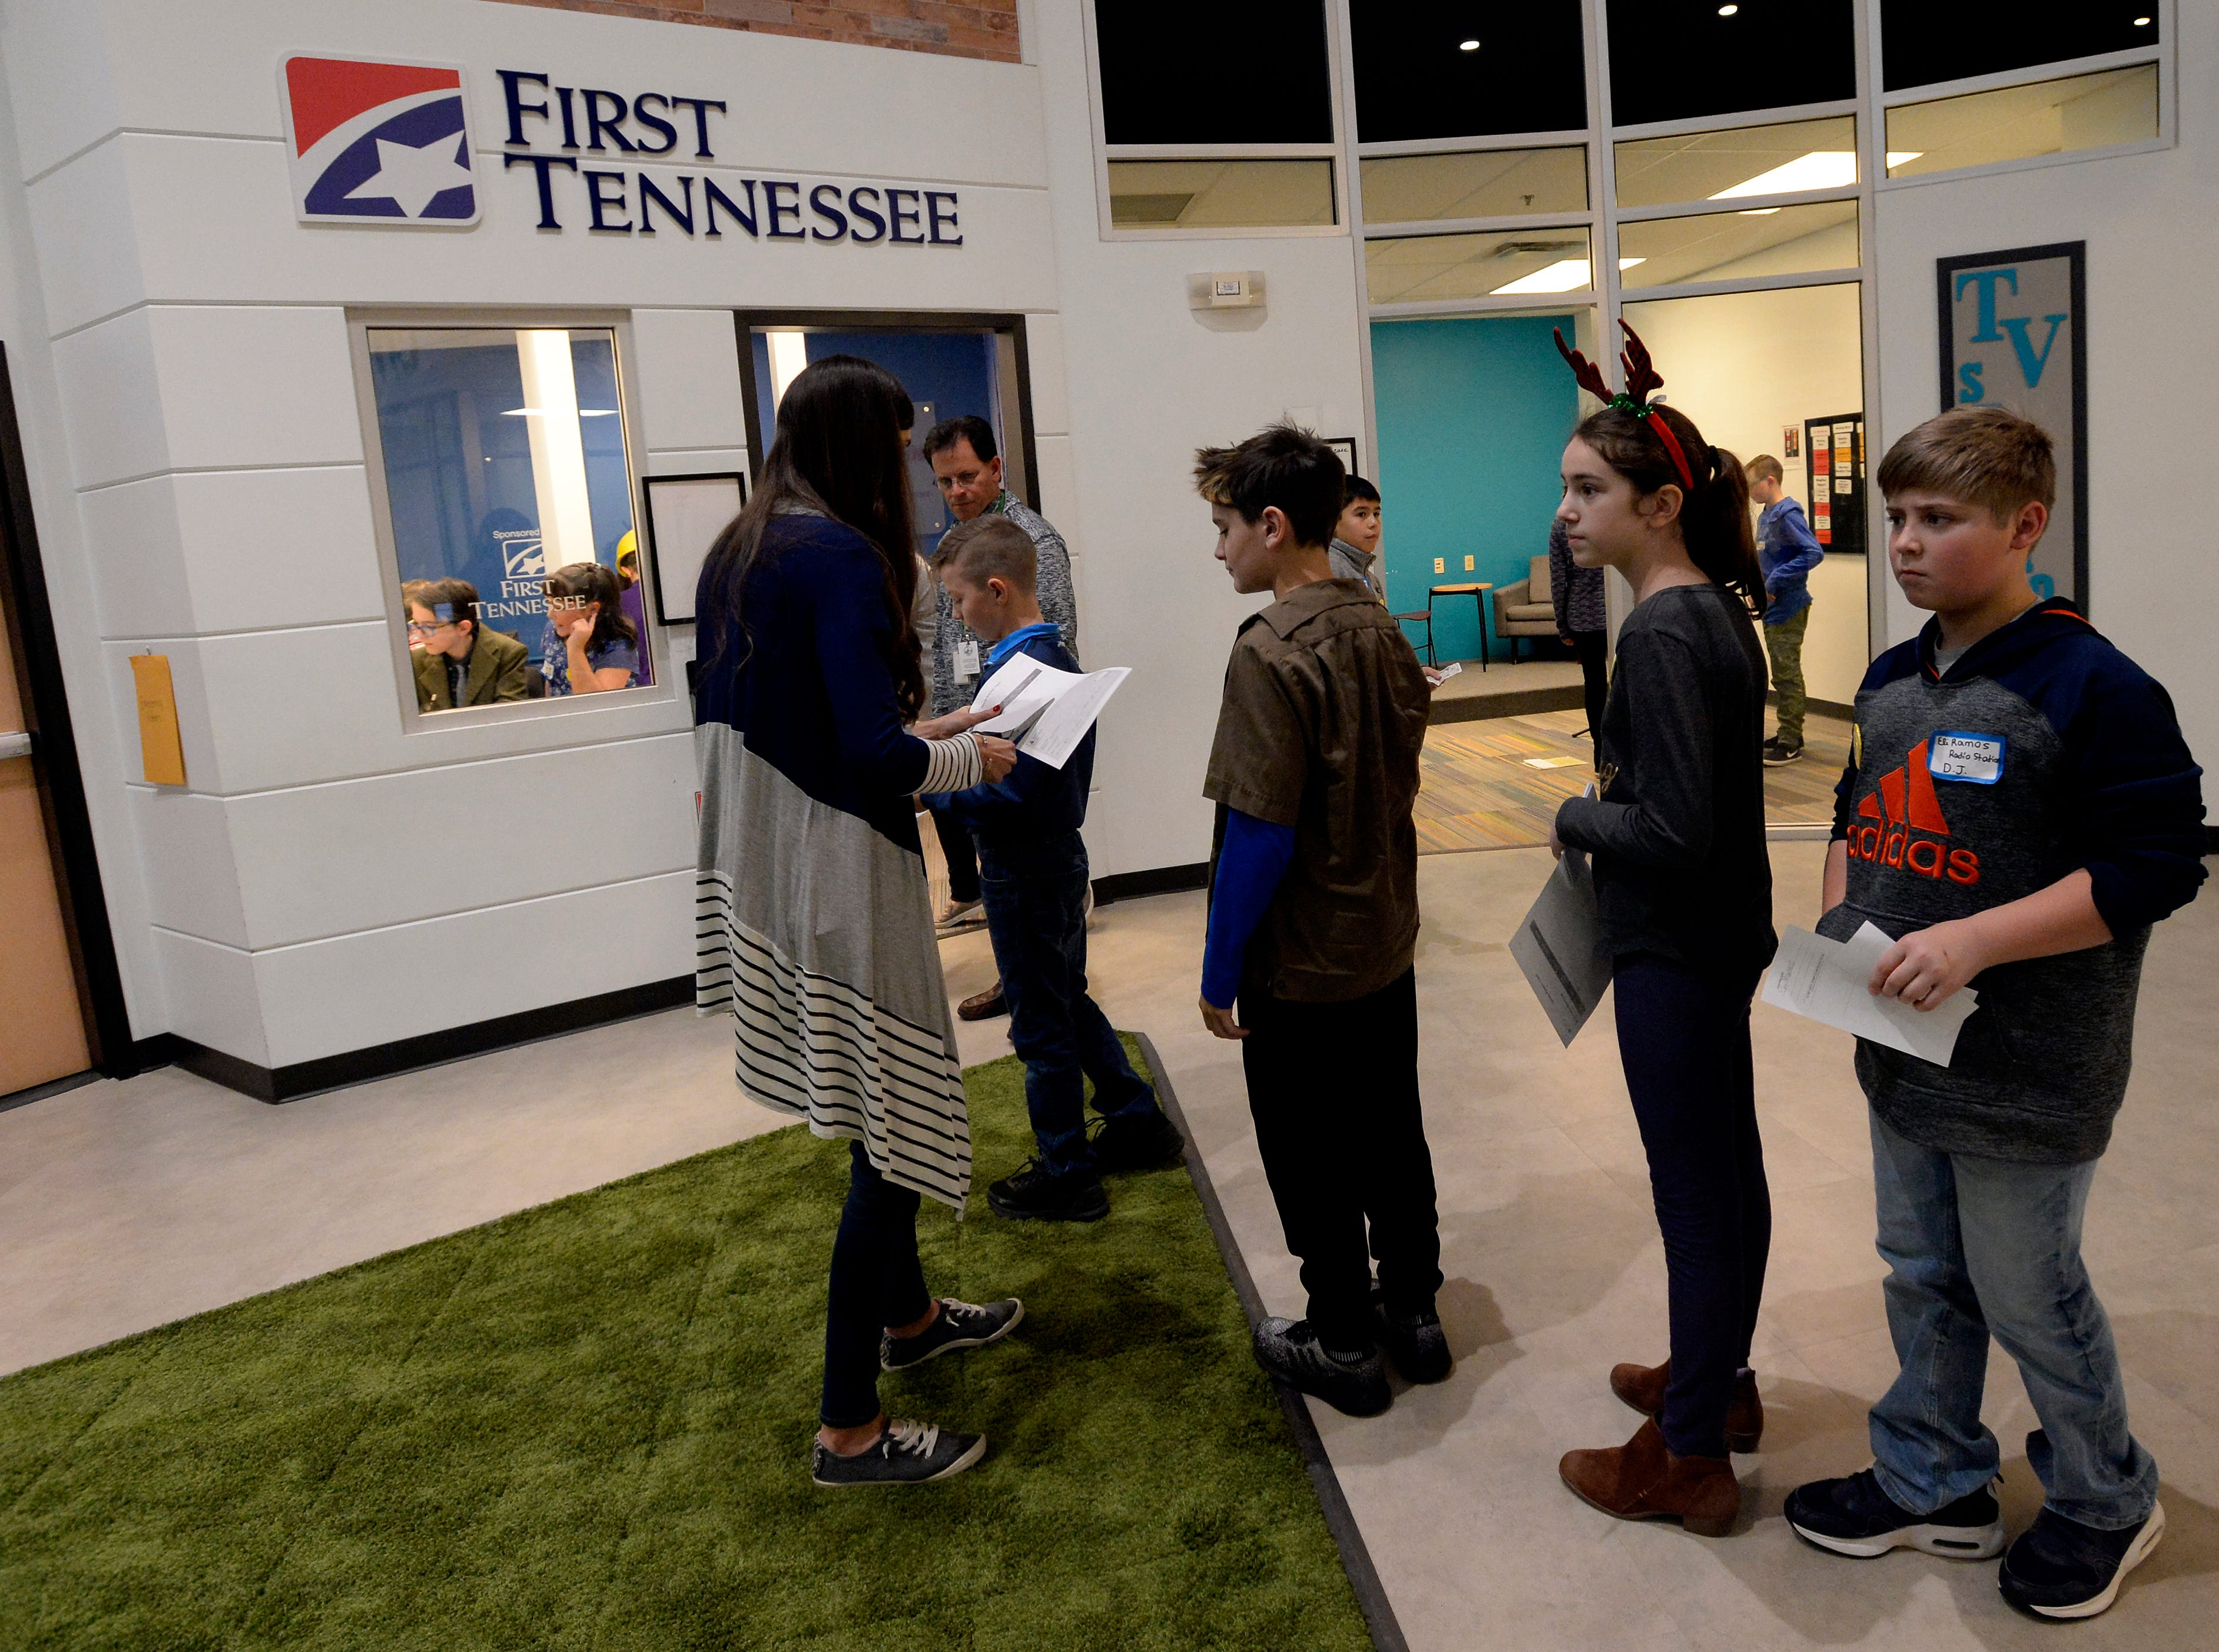 Mill Creek Elementary students wait to cash their checks while attending the Junior Achievement BizTown, Thursday, Dec. 13, 2018, in Nashville, Tenn. The program for fifth graders helps students learn how the economy works. Junior Achievement is expanding to add Finance Park in 2020 so students can learn about expenses and managing money.